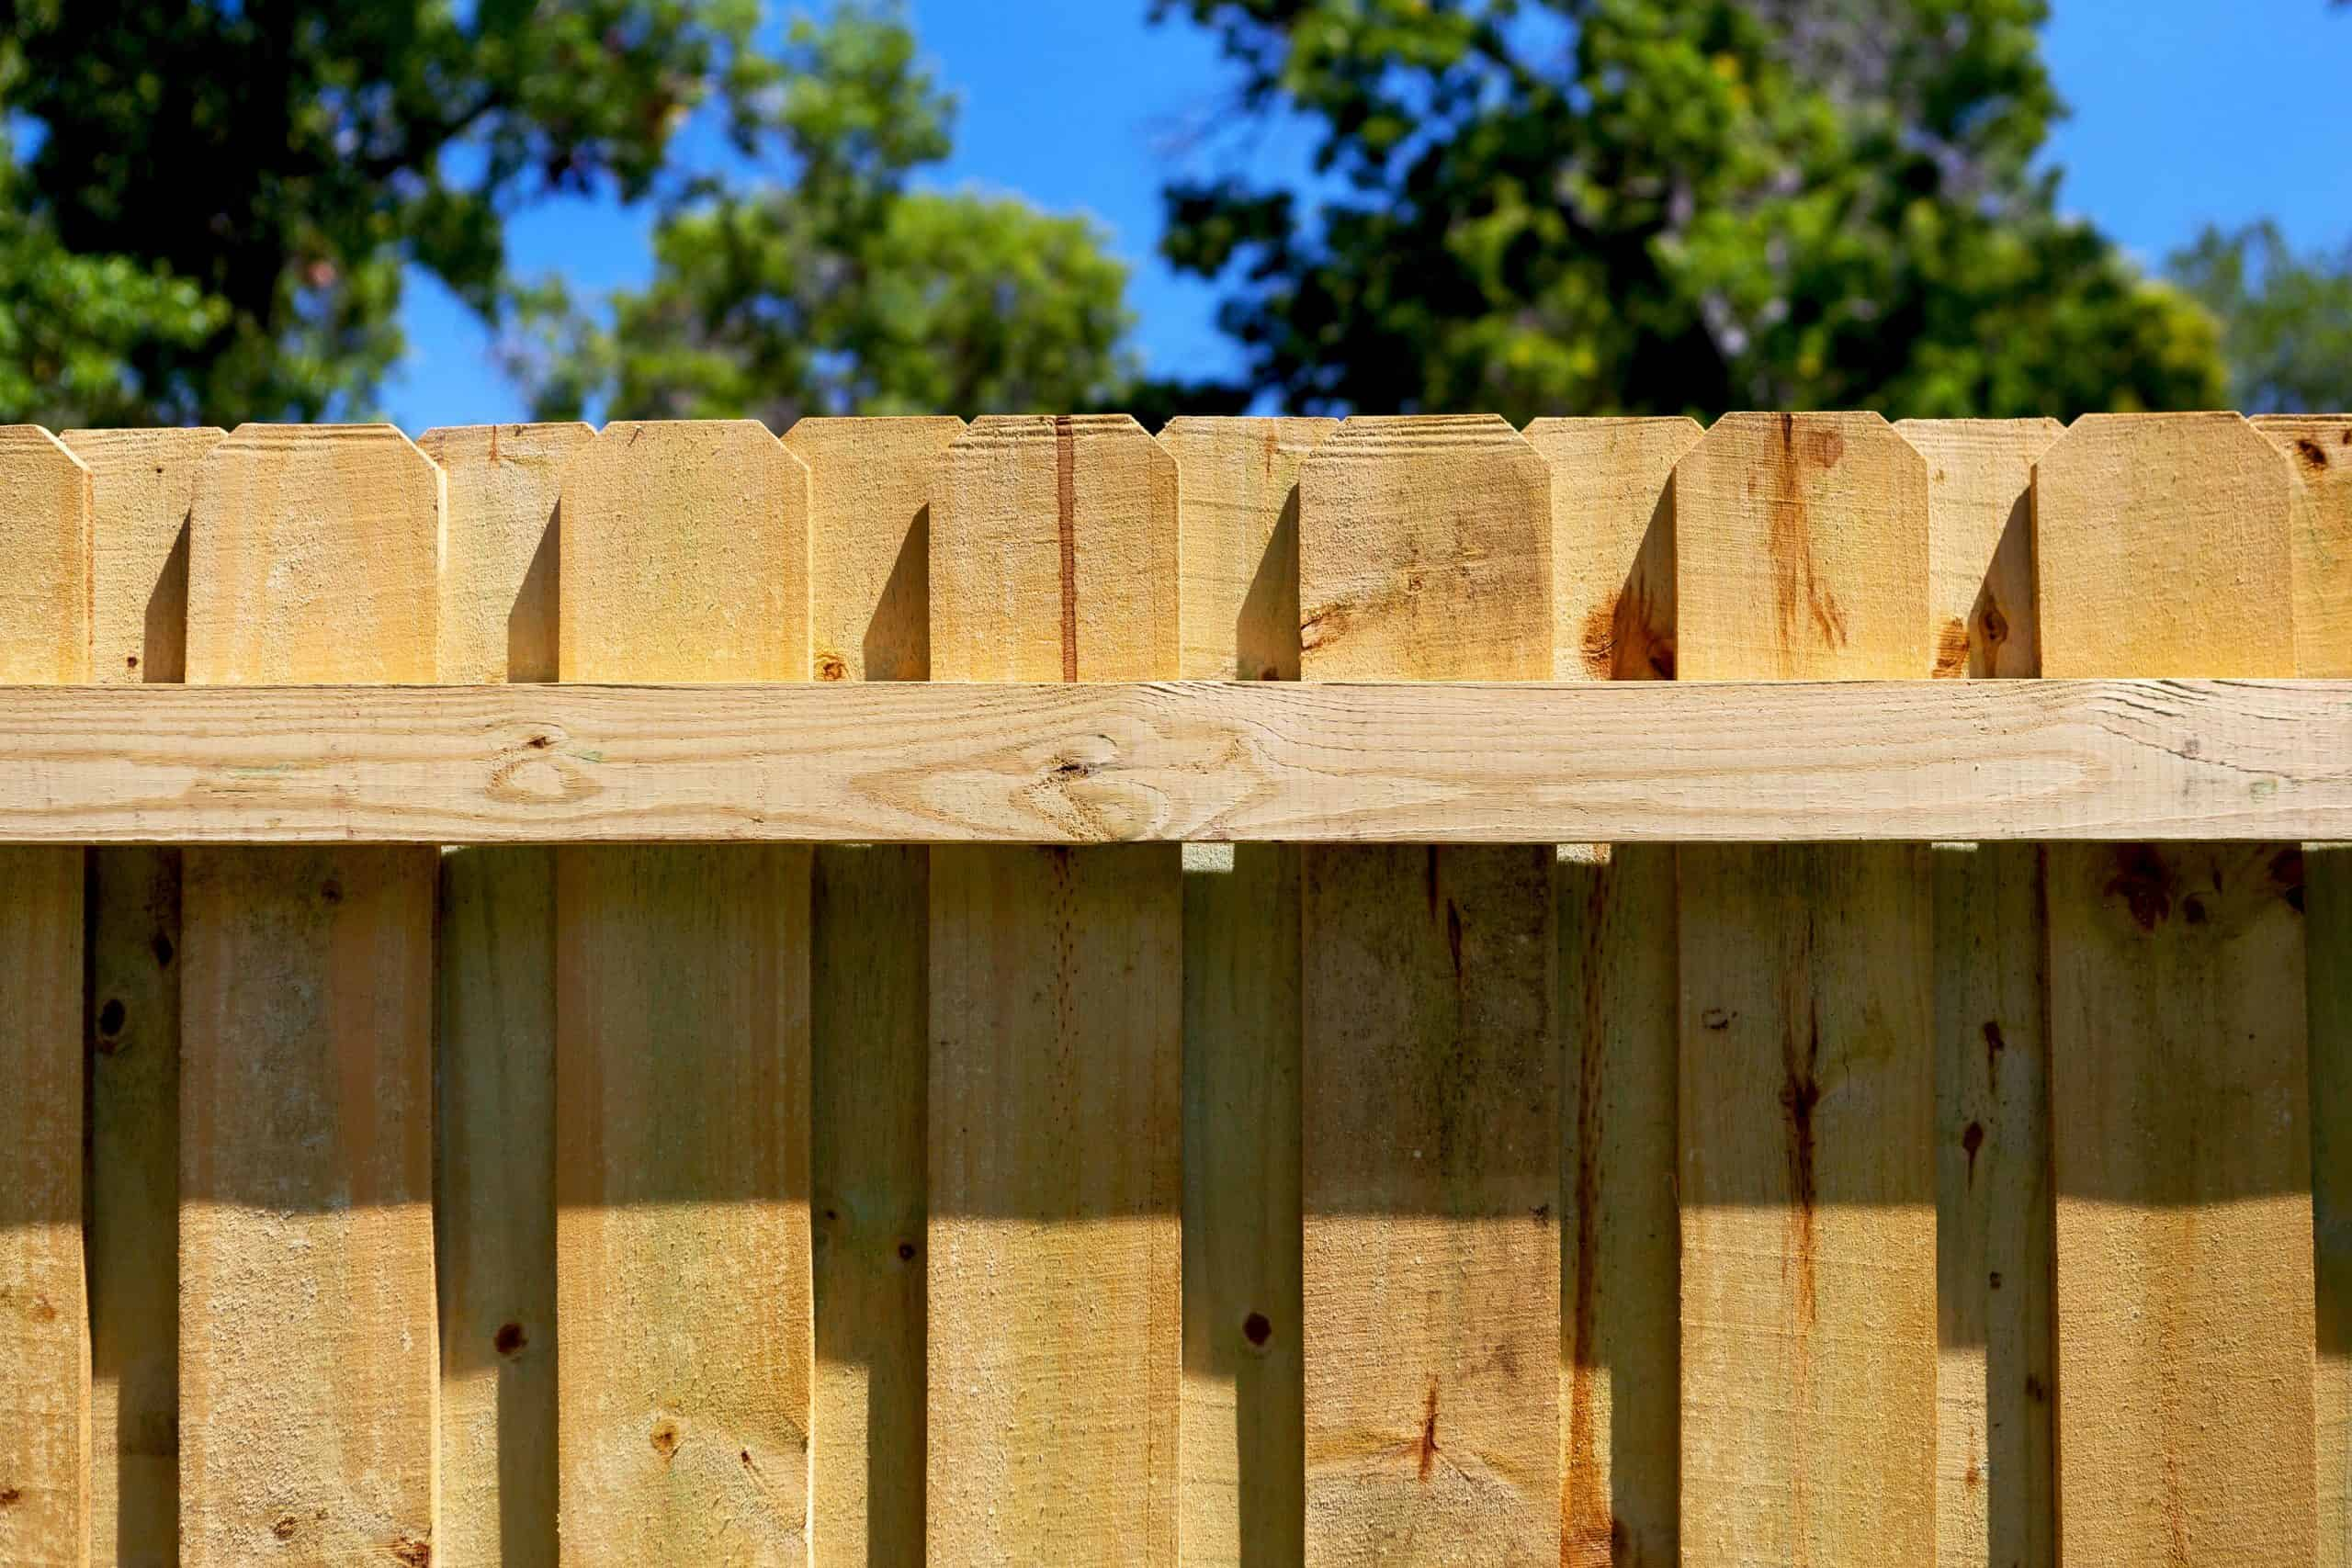 https://www.superiorfenceandrail.com/wp-content/uploads/2020/06/wood-fence-scaled.jpg